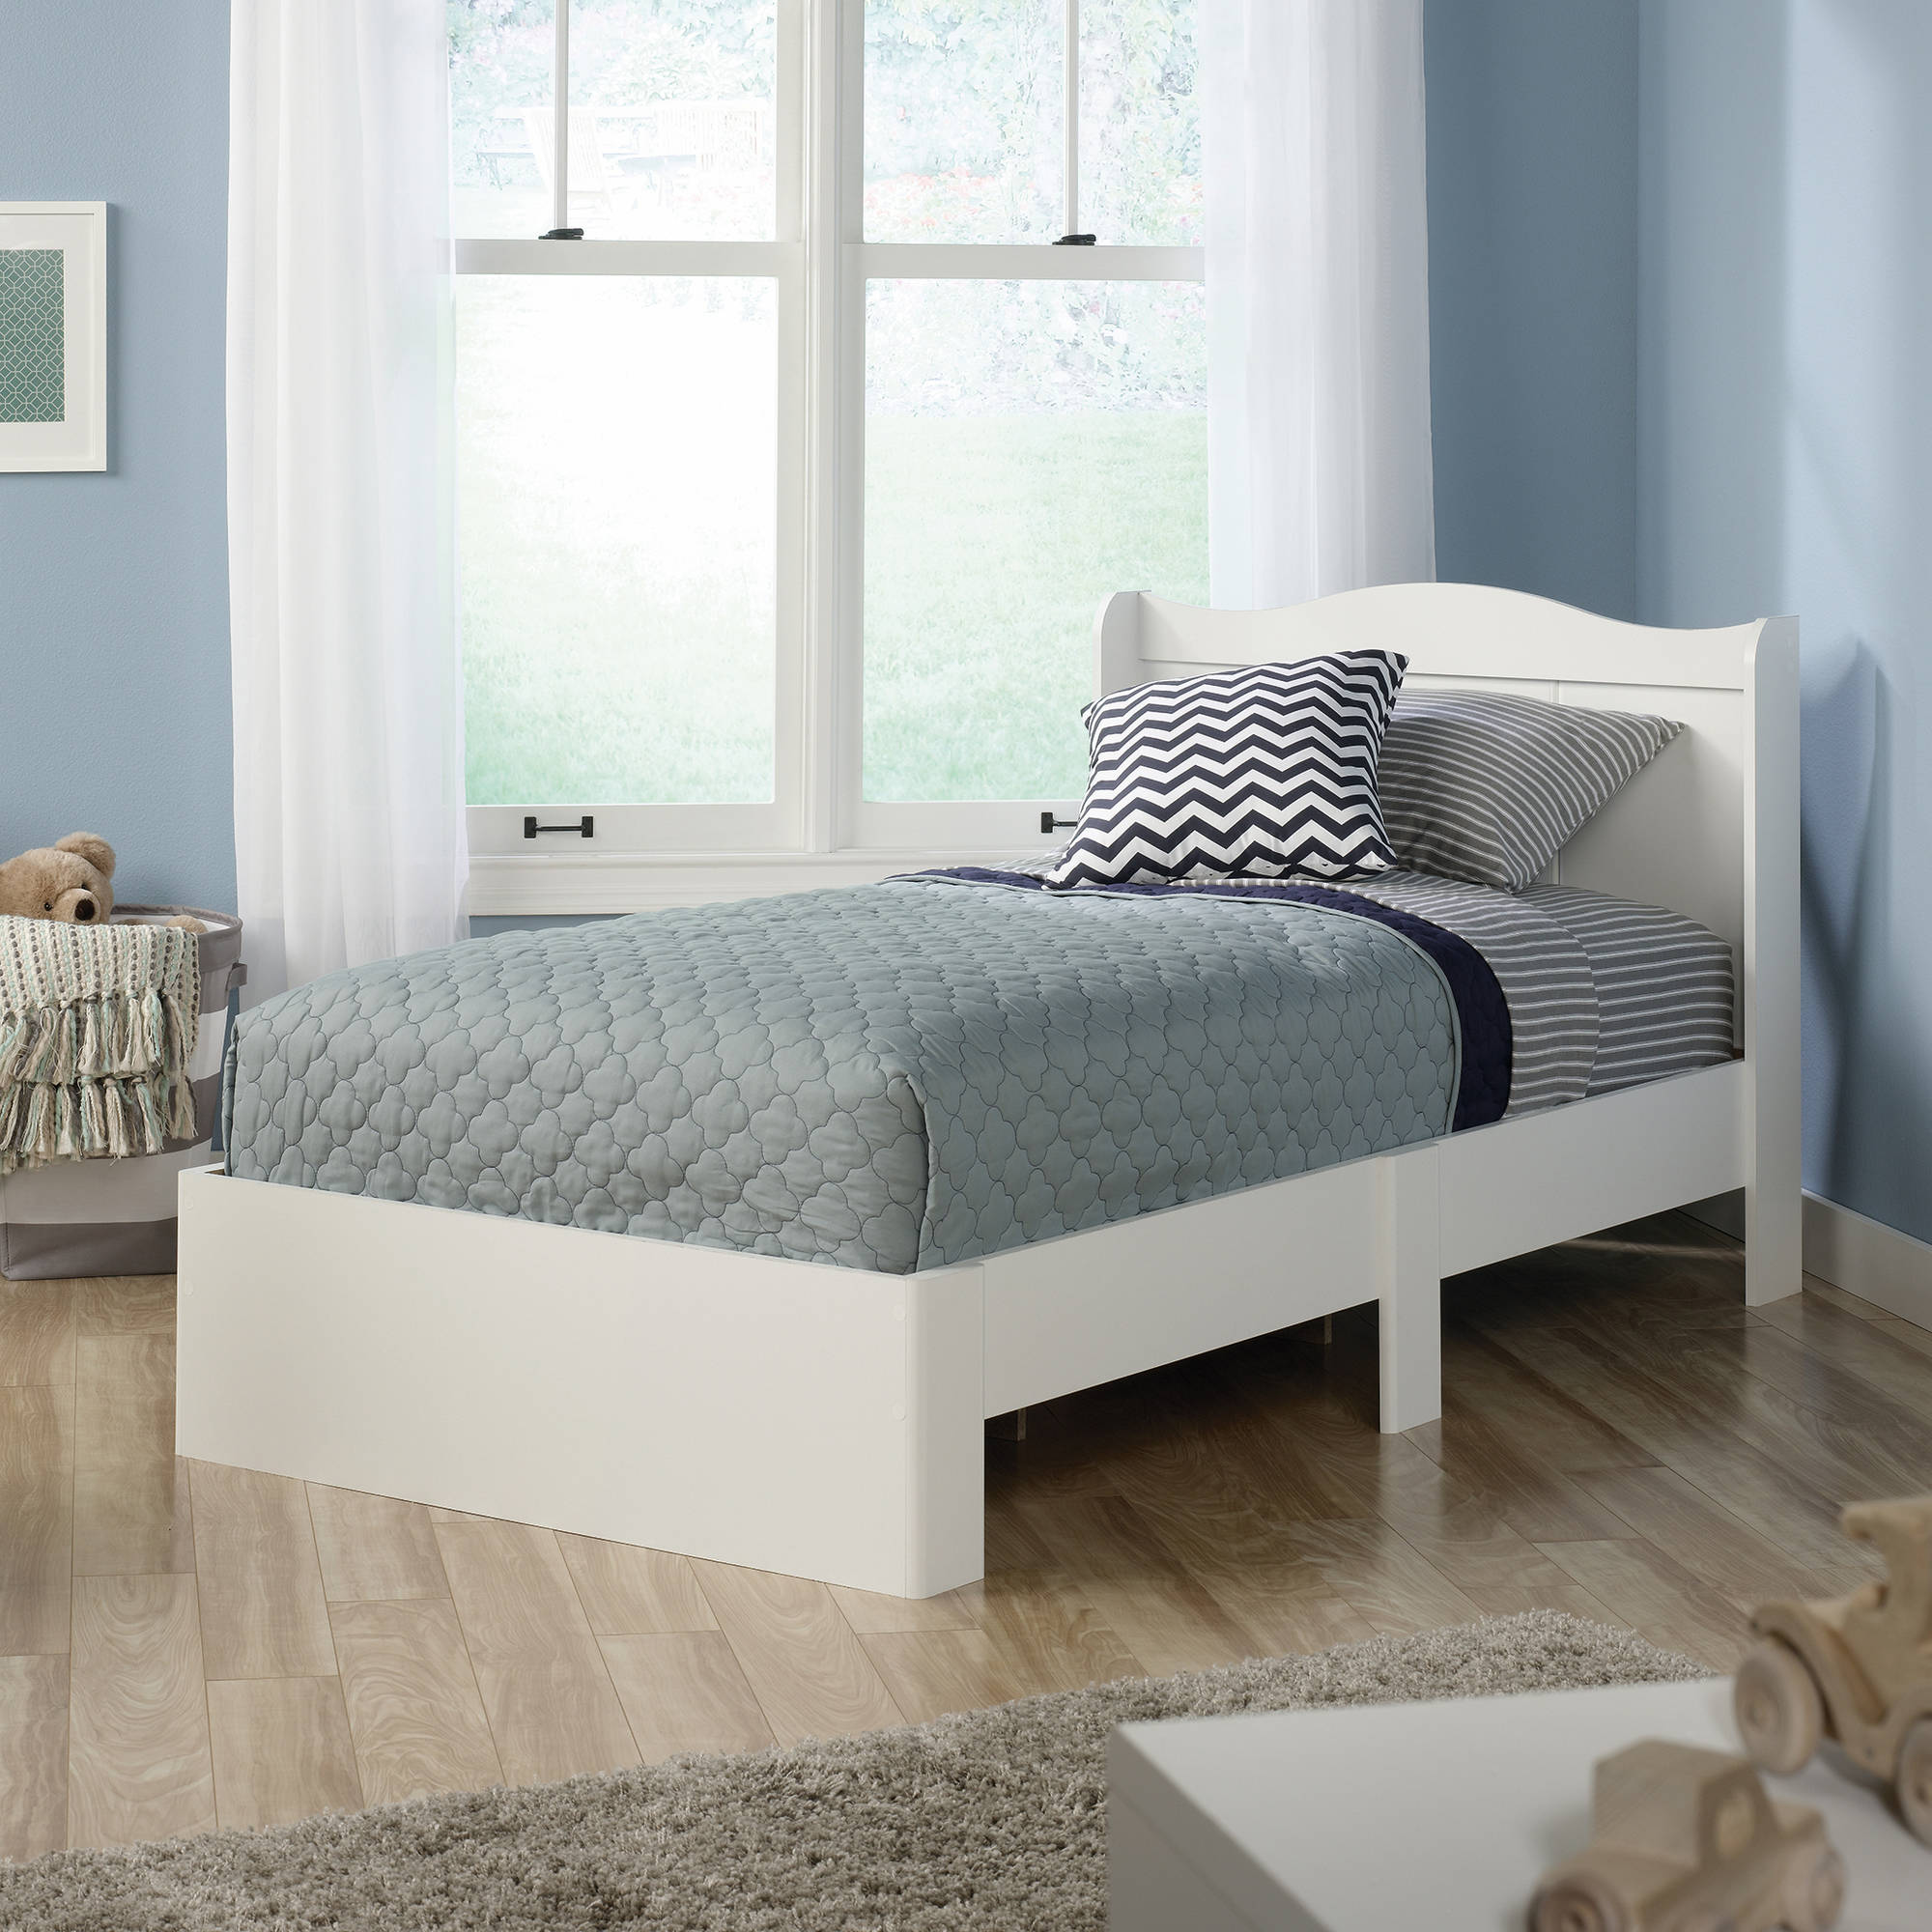 White Platform Bed Without Headboard Sauder Storybook Mates Bed Twin Multiple Finishes With Headboard